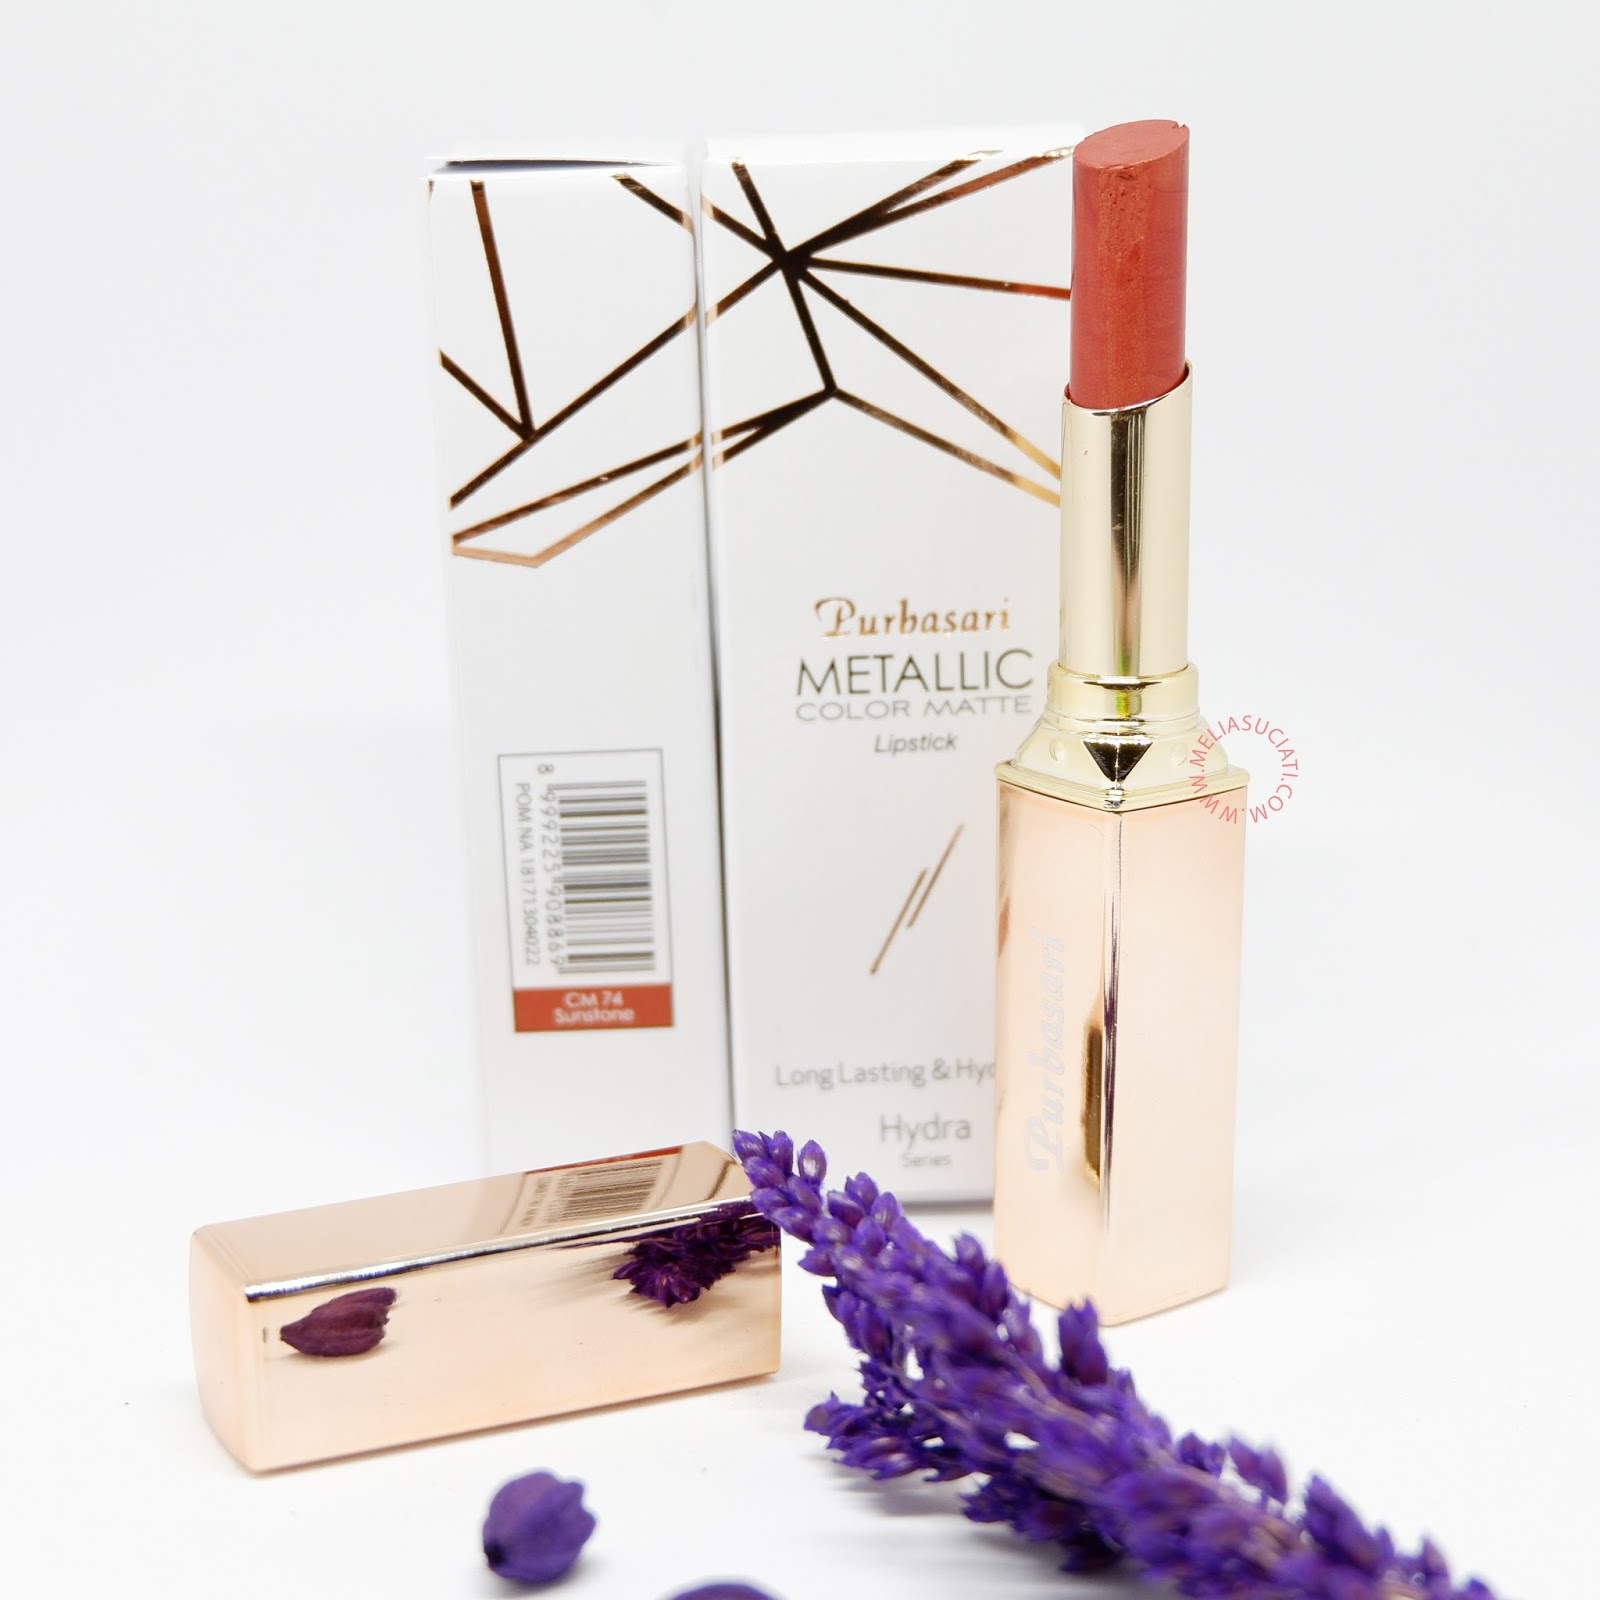 Purbasari Metallic Color Matte Lipstick Review dan Swatch